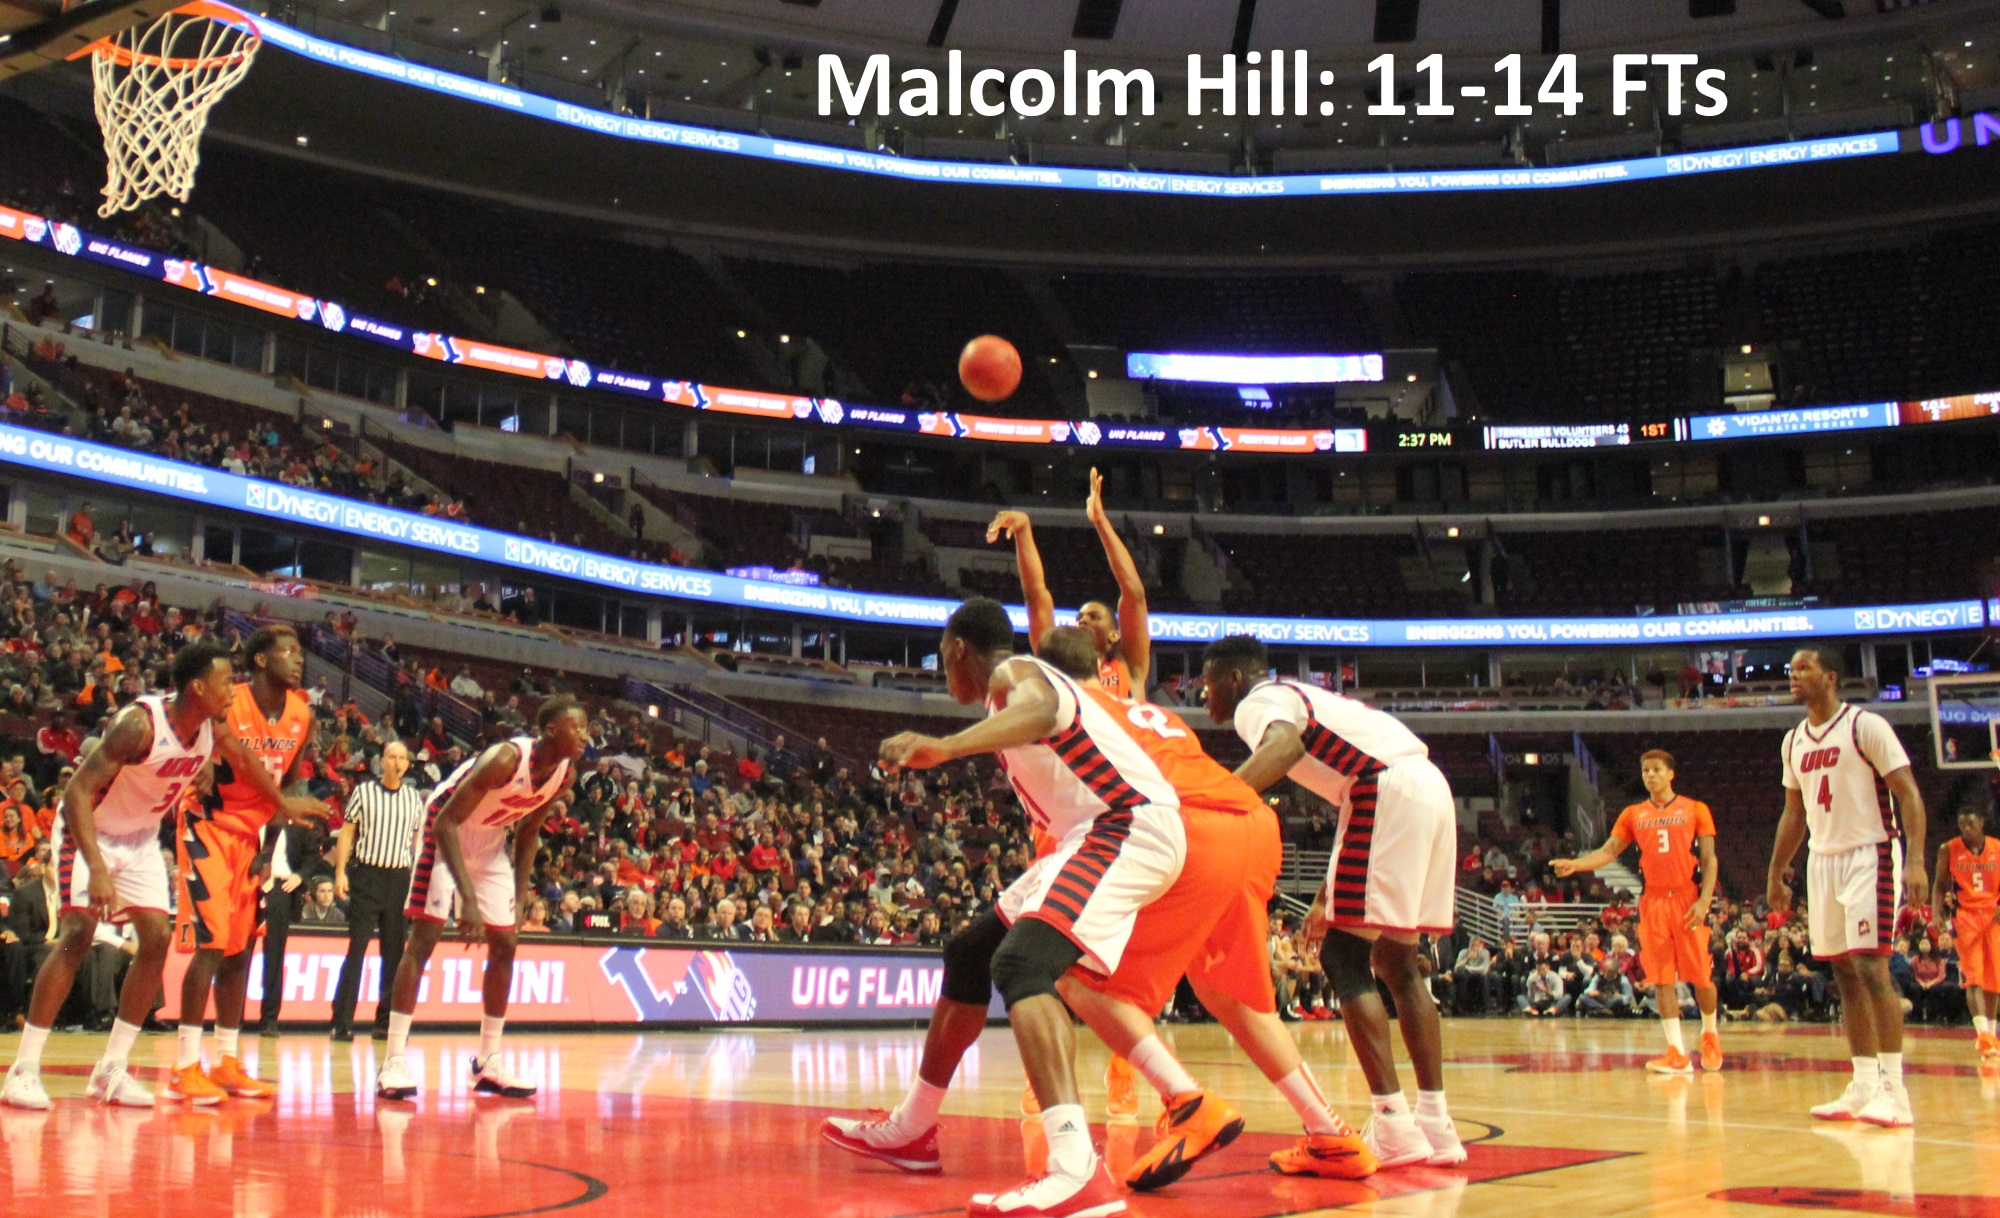 Malcolm Hill 11-14 FTs